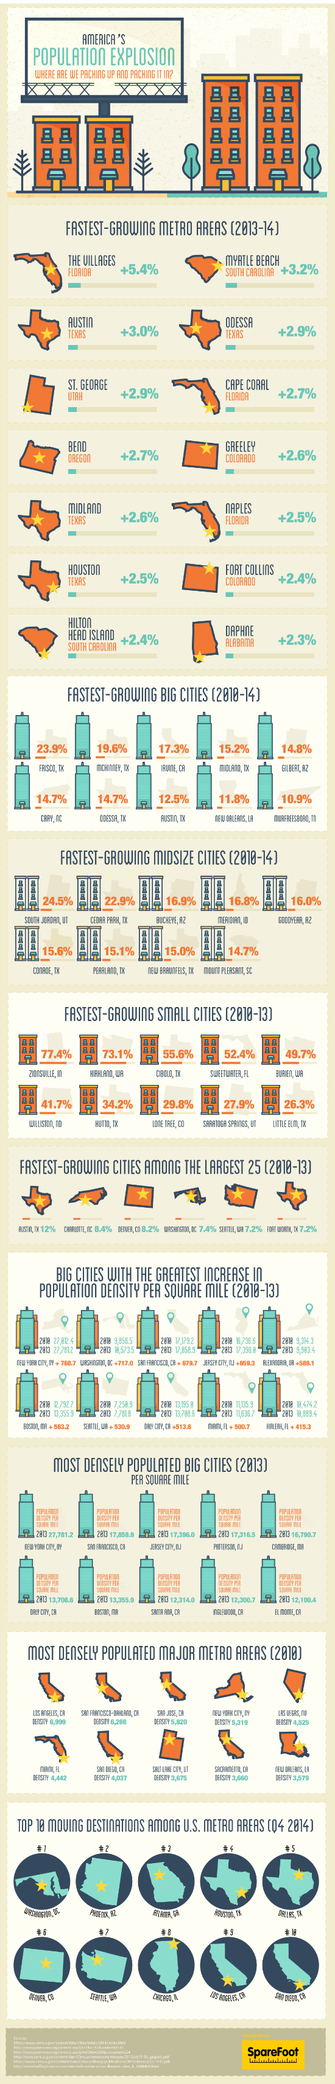 Where Is America Moving To? [Infographic]